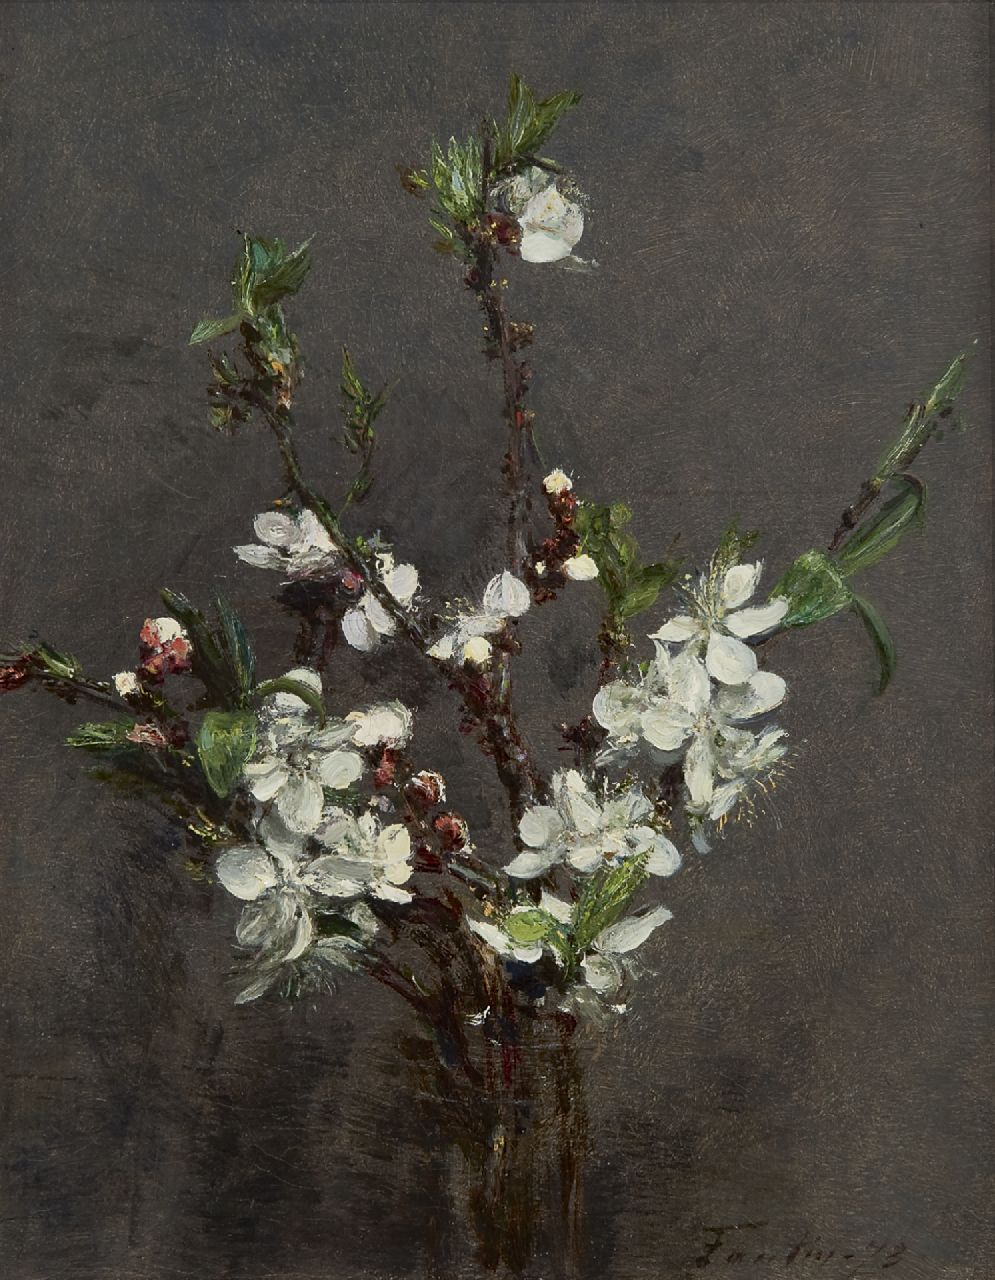 Fantin-Latour I.H.J.T.  | Ignace 'Henri' Jean Théodore Fantin-Latour, Blossoming branches, oil on canvas 27.0 x 21.2 cm, signed l.r. and dated '73